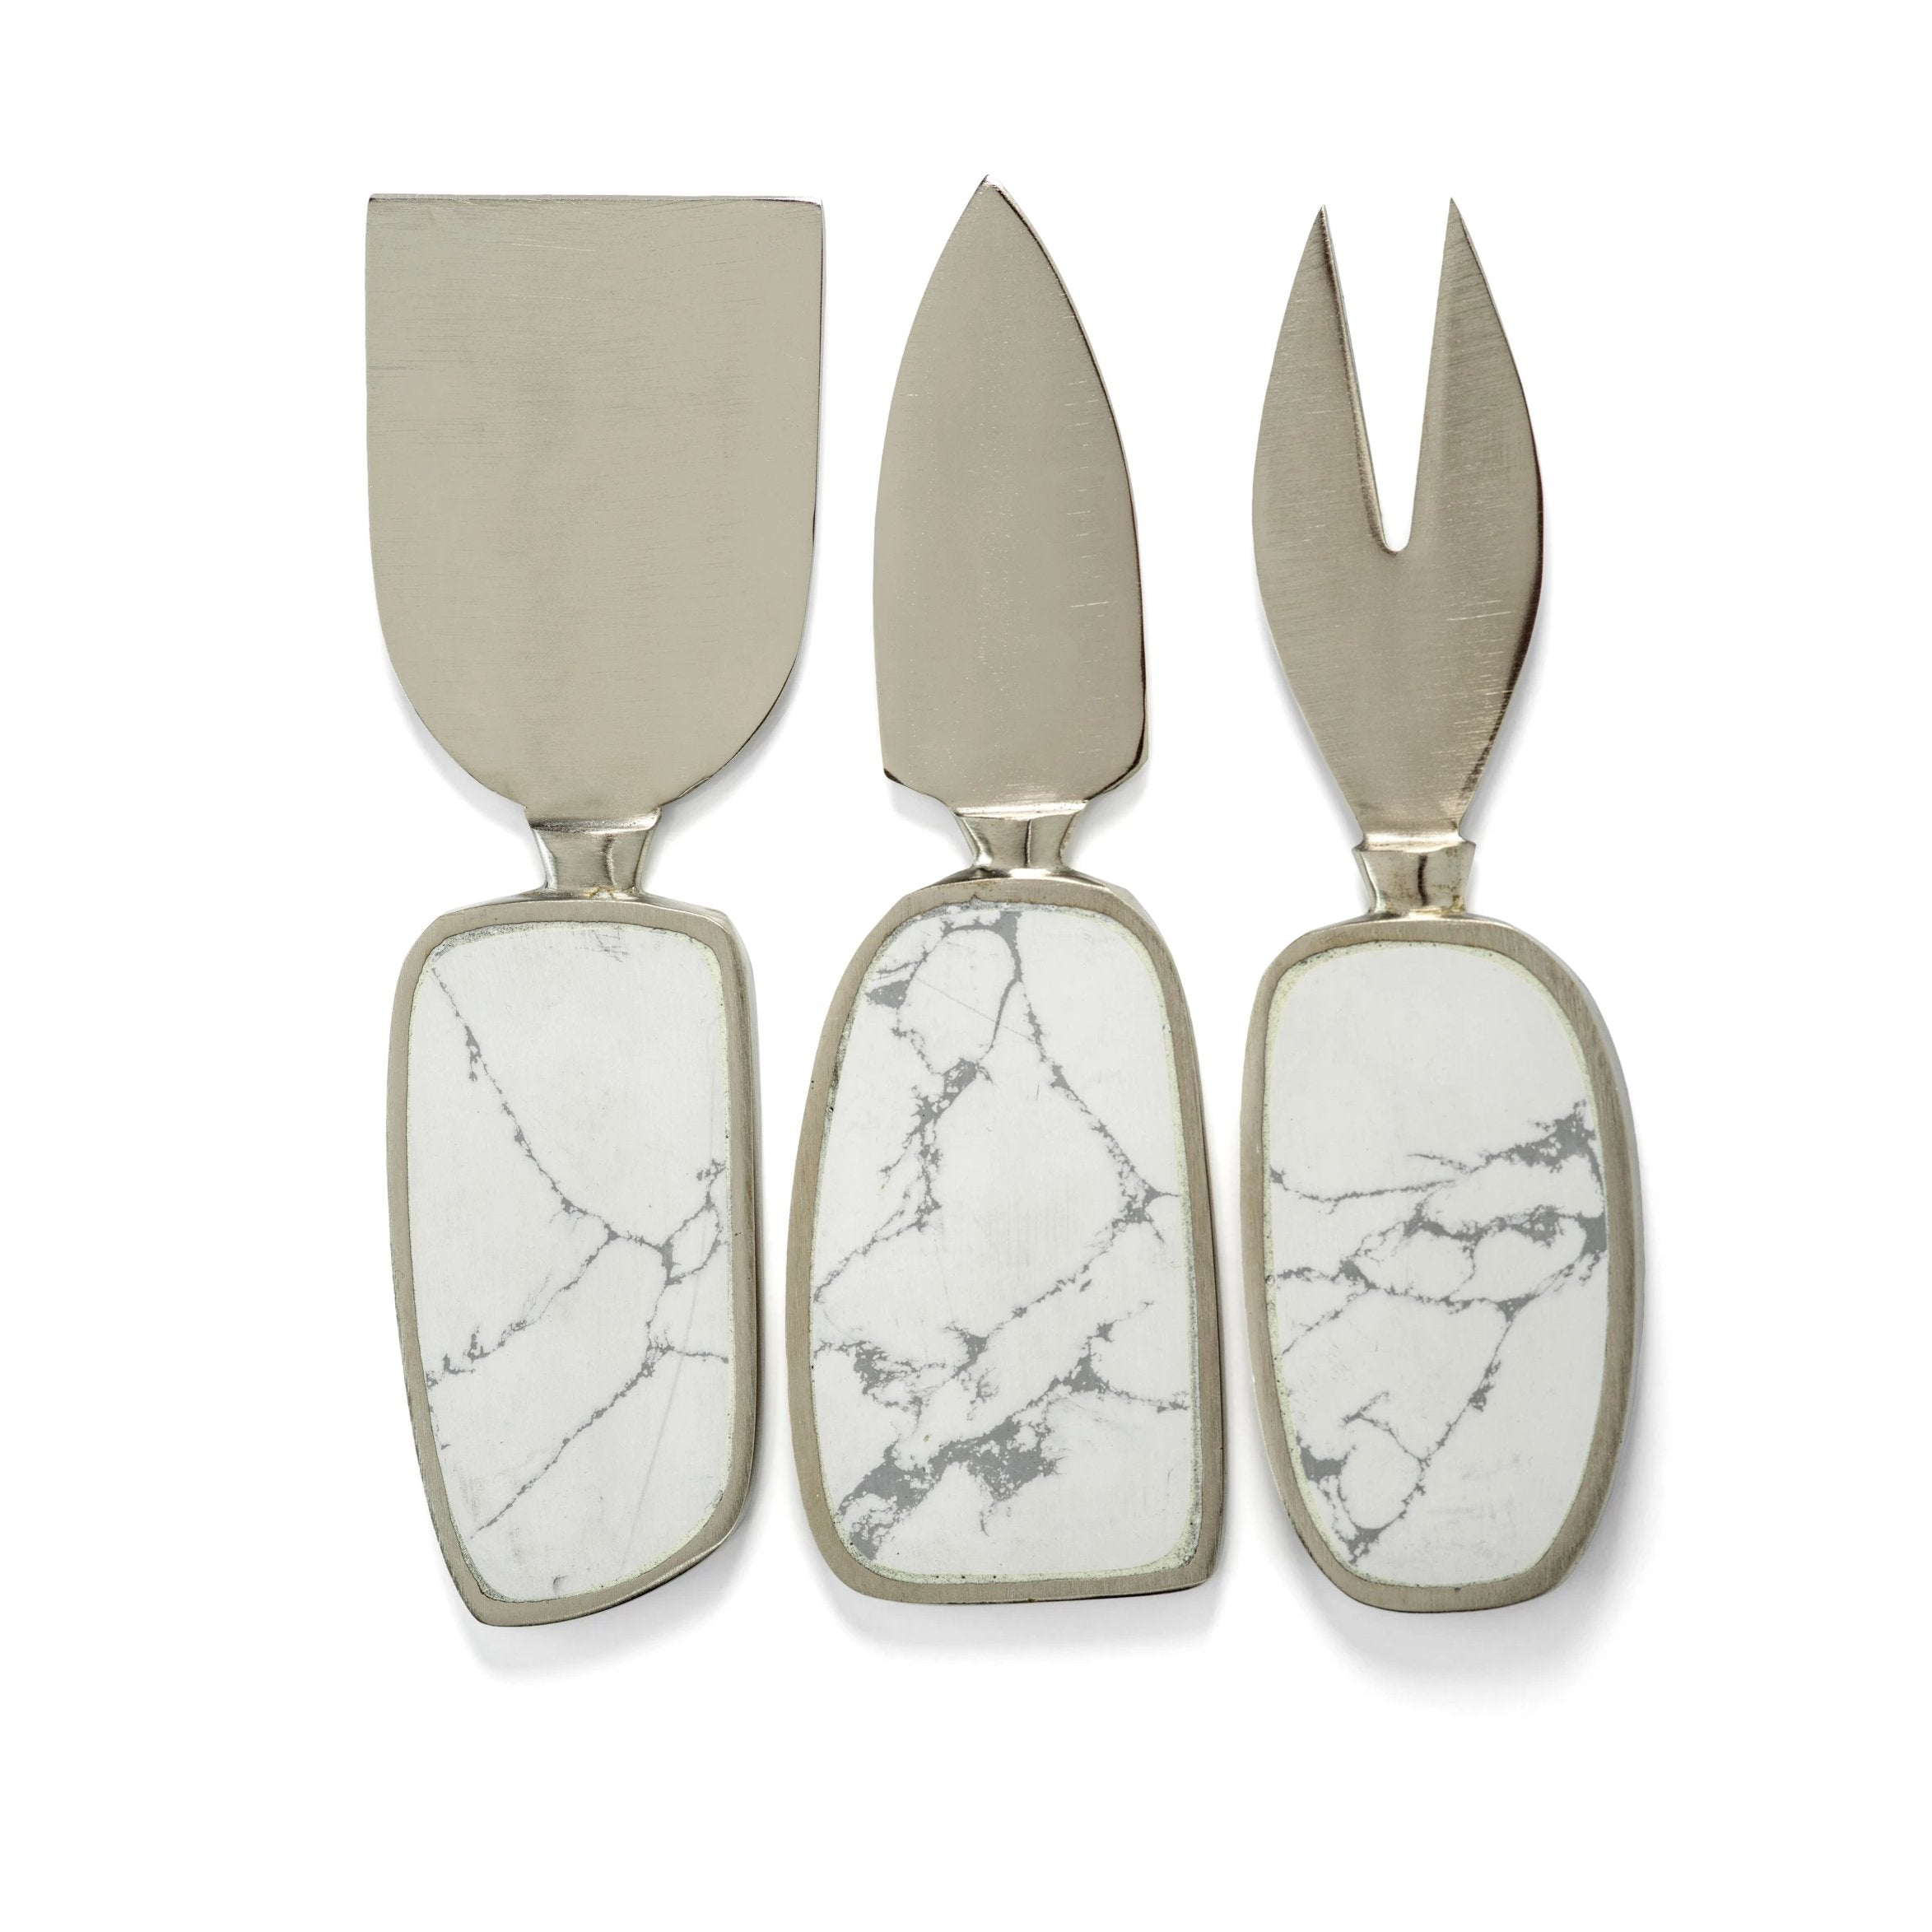 Amalfi Set/3 Cheese Tool Set - White w/ Nickel